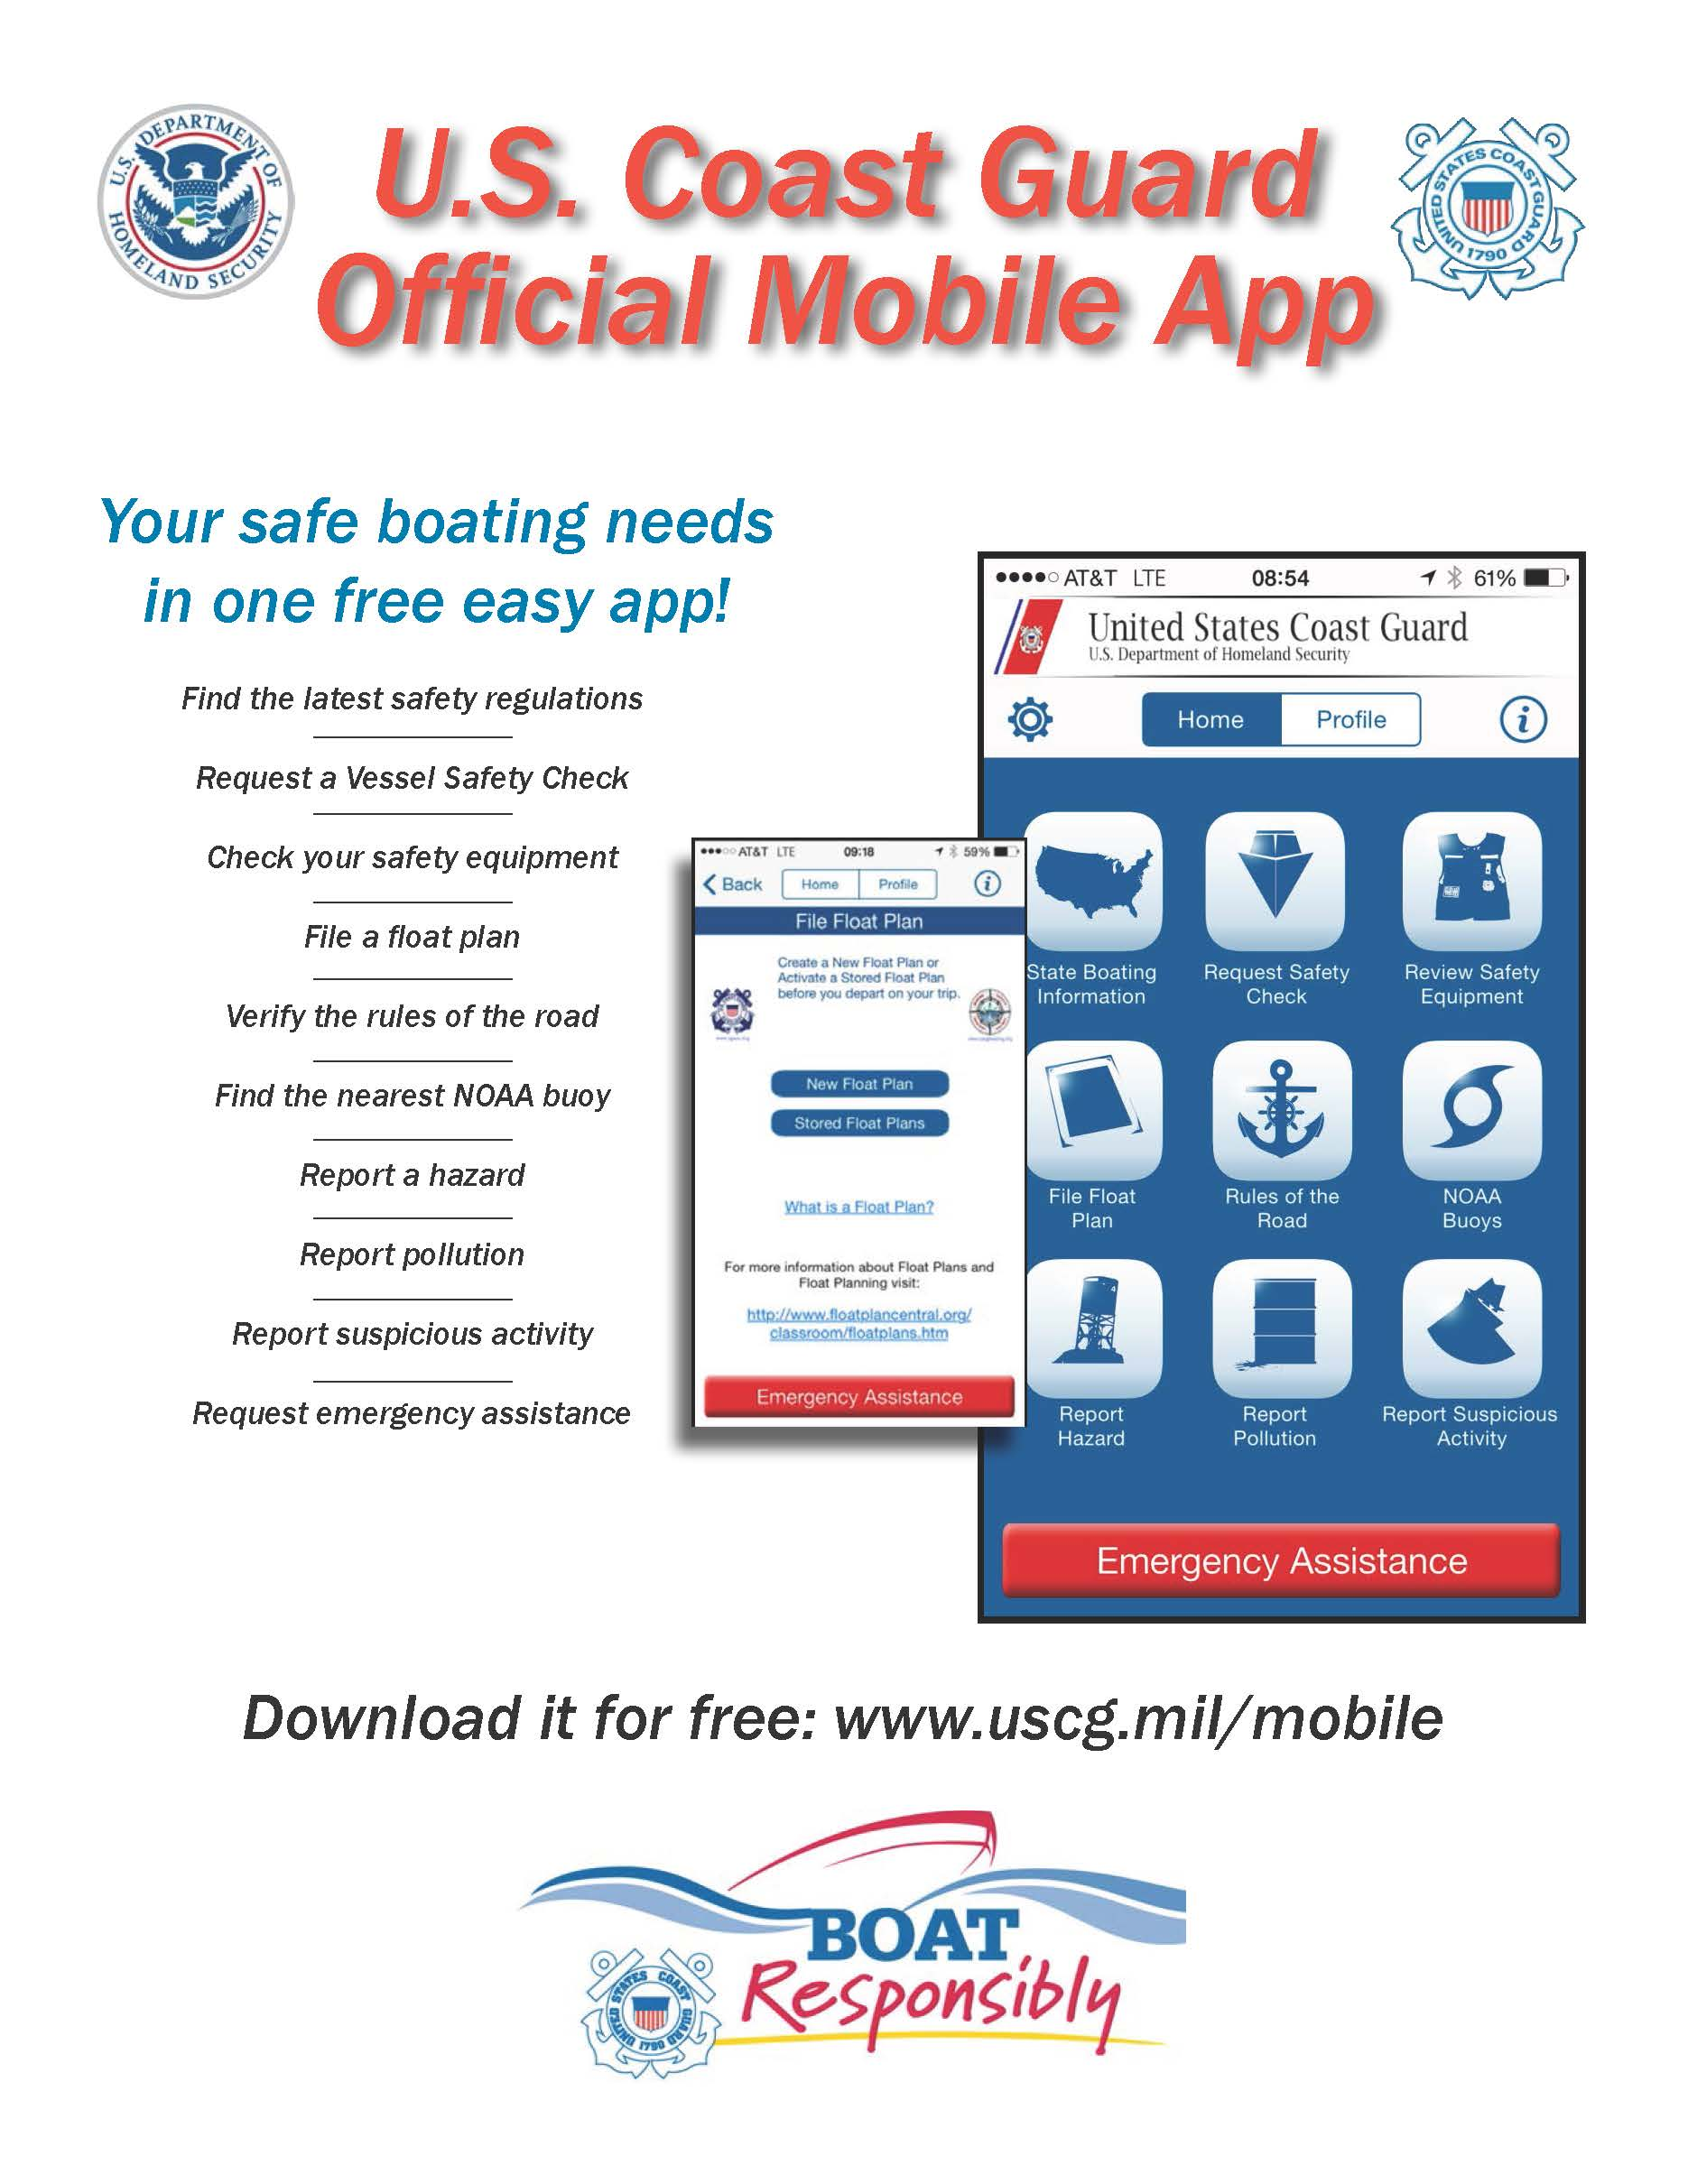 U.S. Coast Guard Official Mobile App